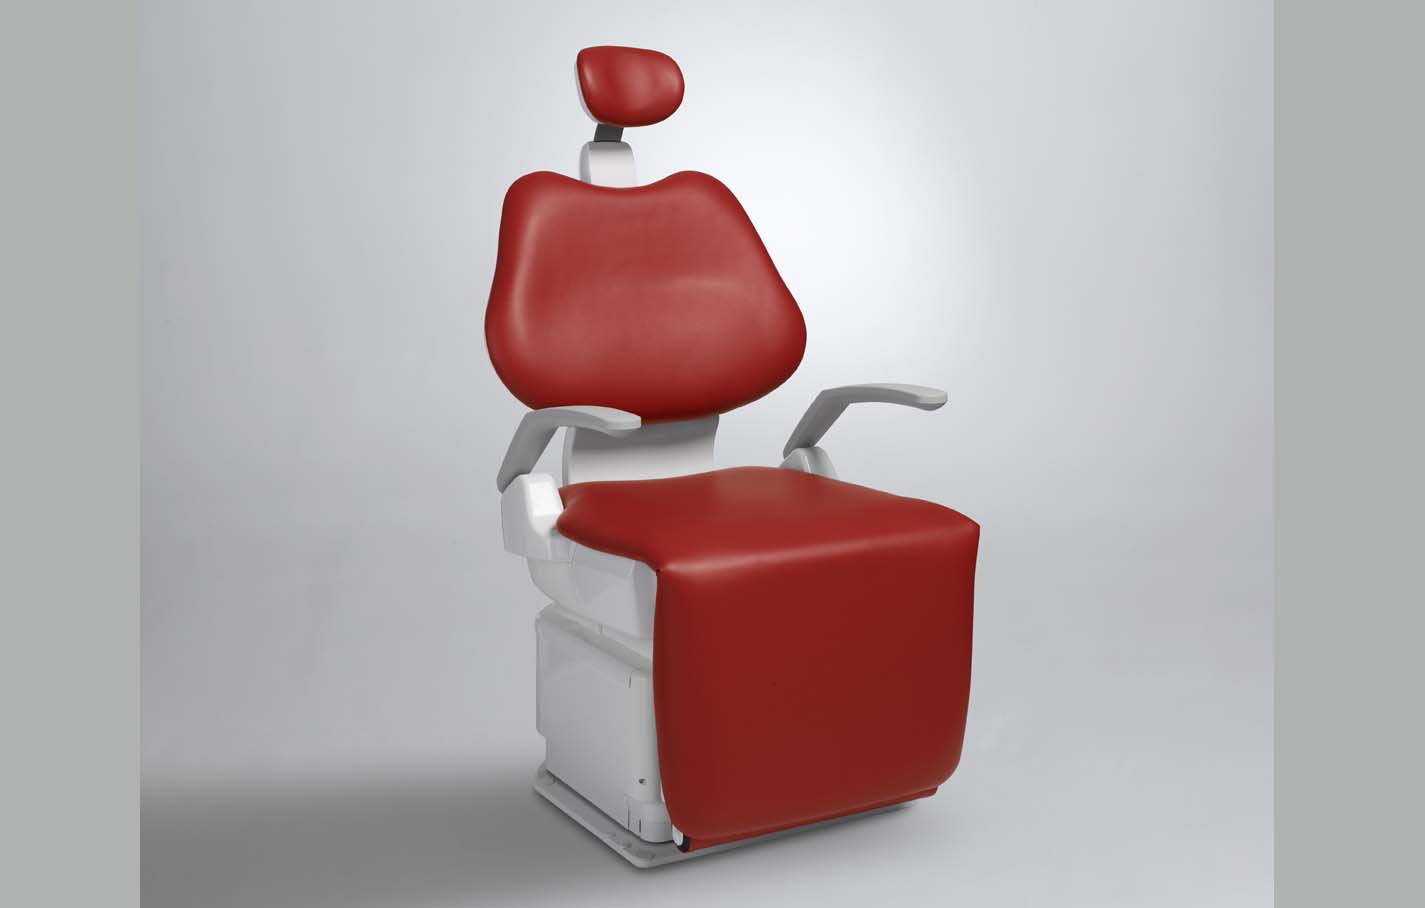 See The Belmont Knee Break Dental Chair At Our Showrooms